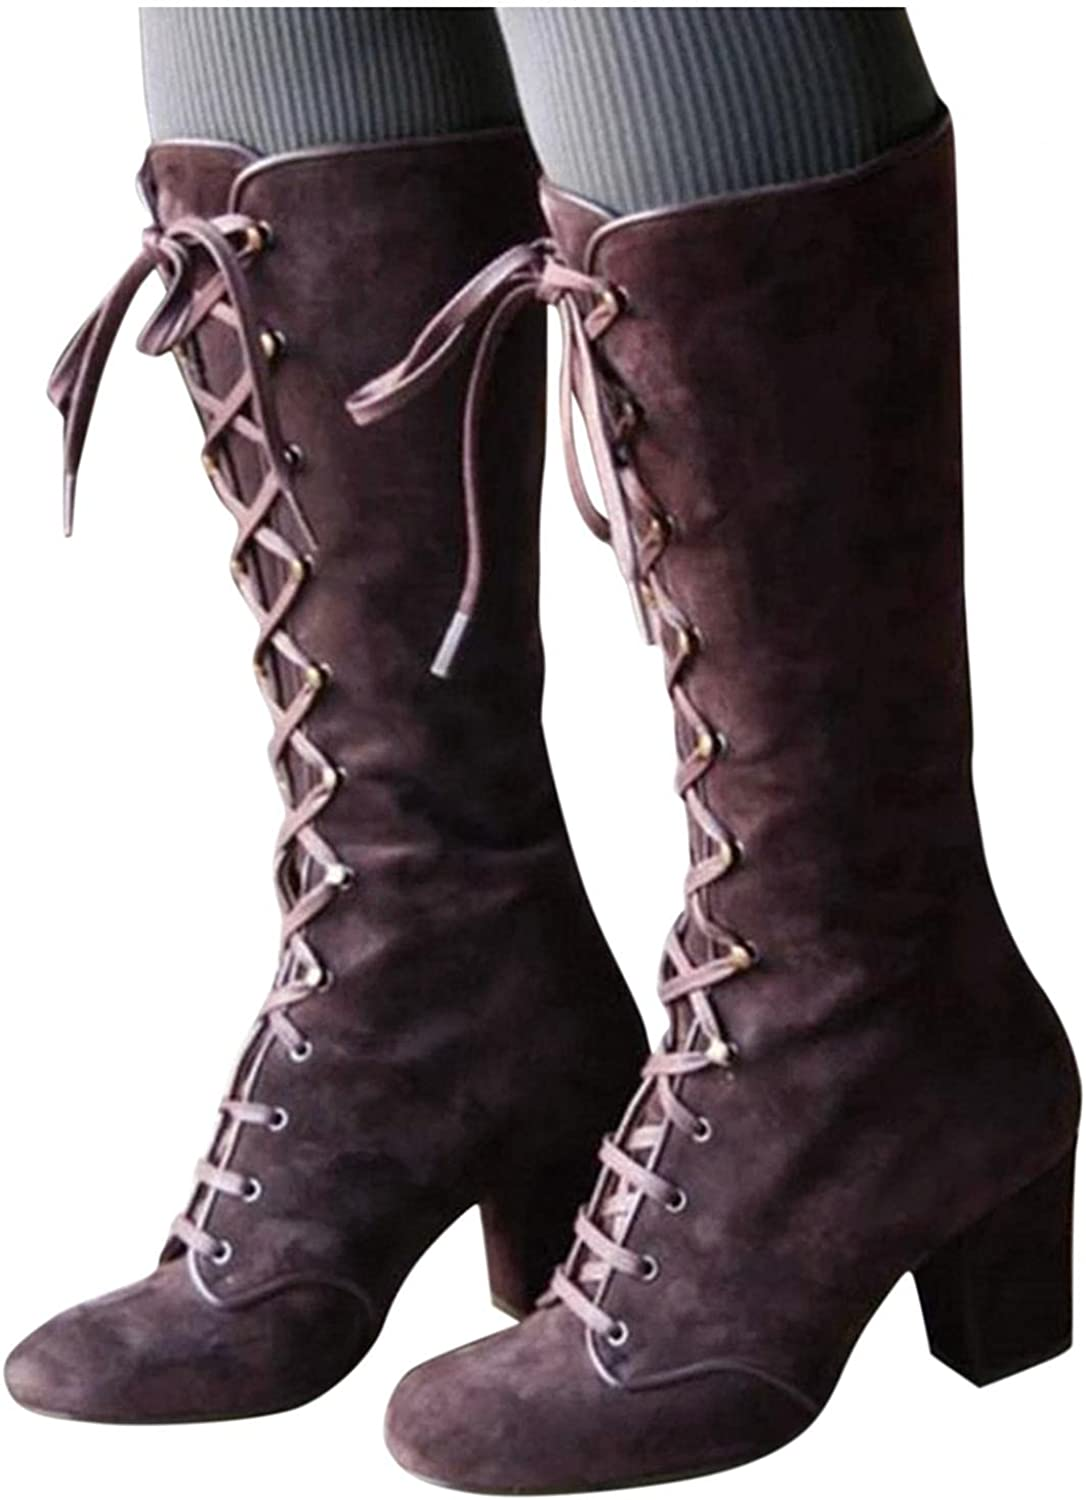 Gibobby Boots for Women Fashion Knee High Boots Round Toe Lace U